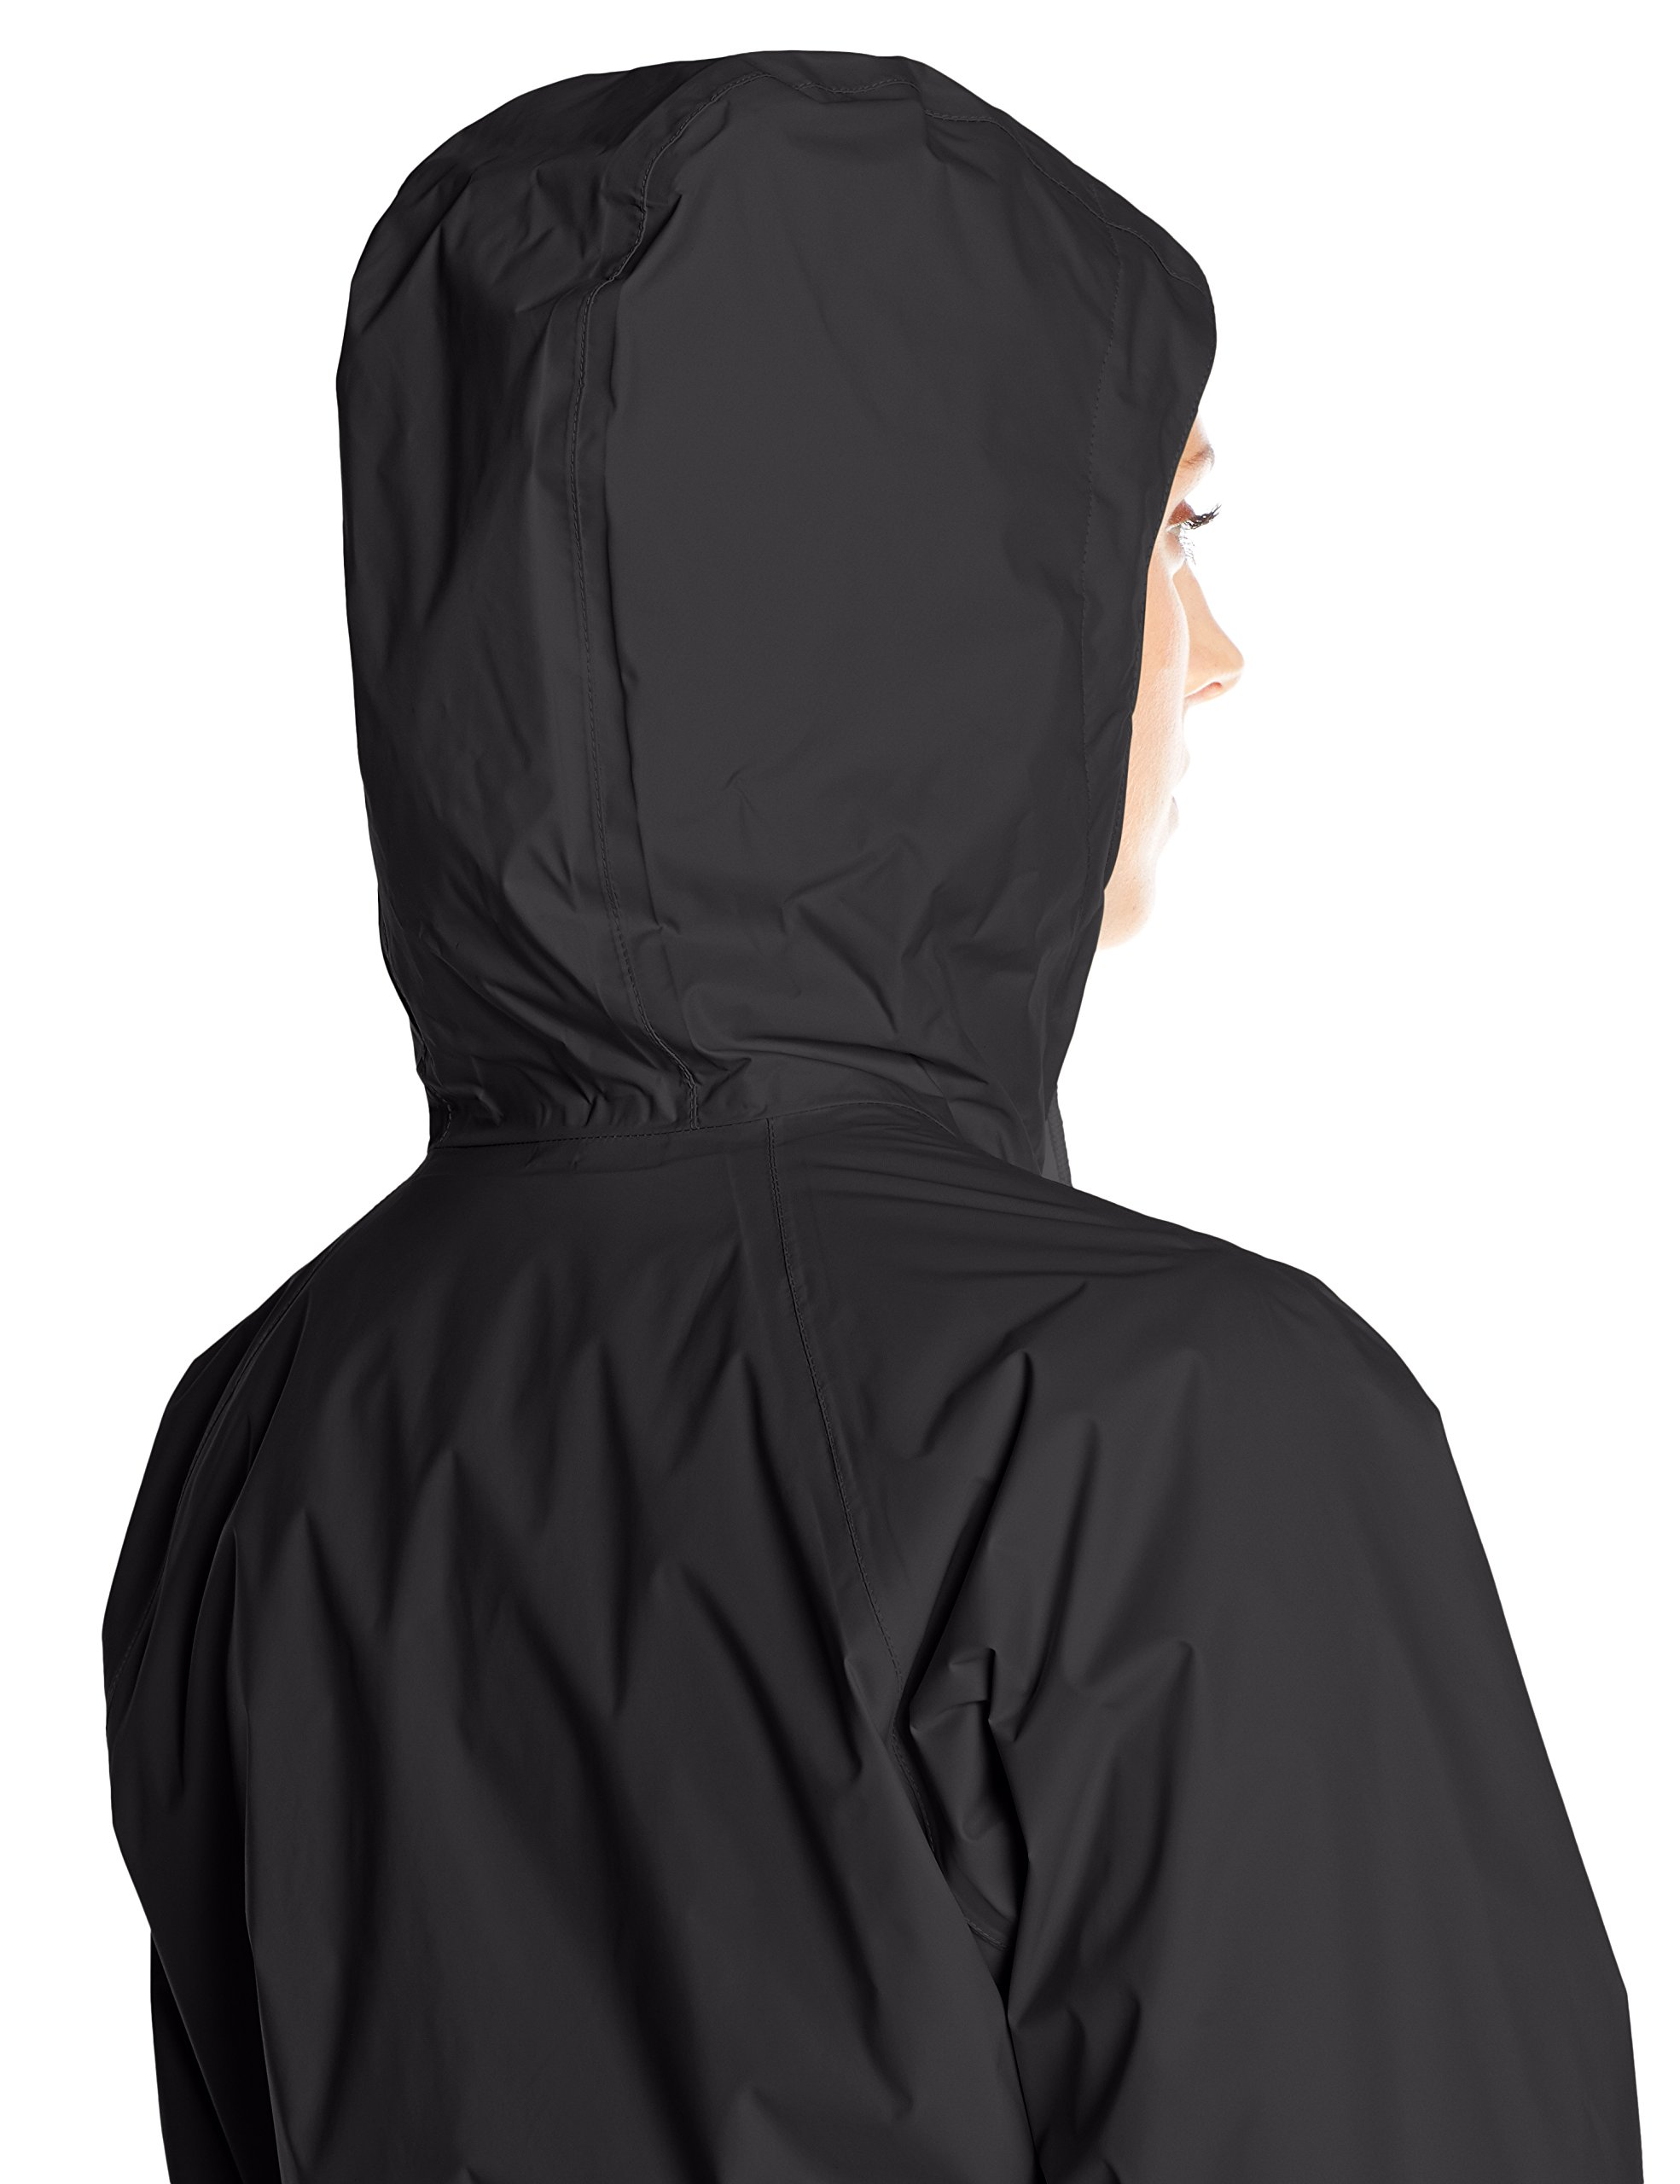 Columbia Women's Arcadia Casual Jacket Outerwear, Black, M by Columbia (Image #3)